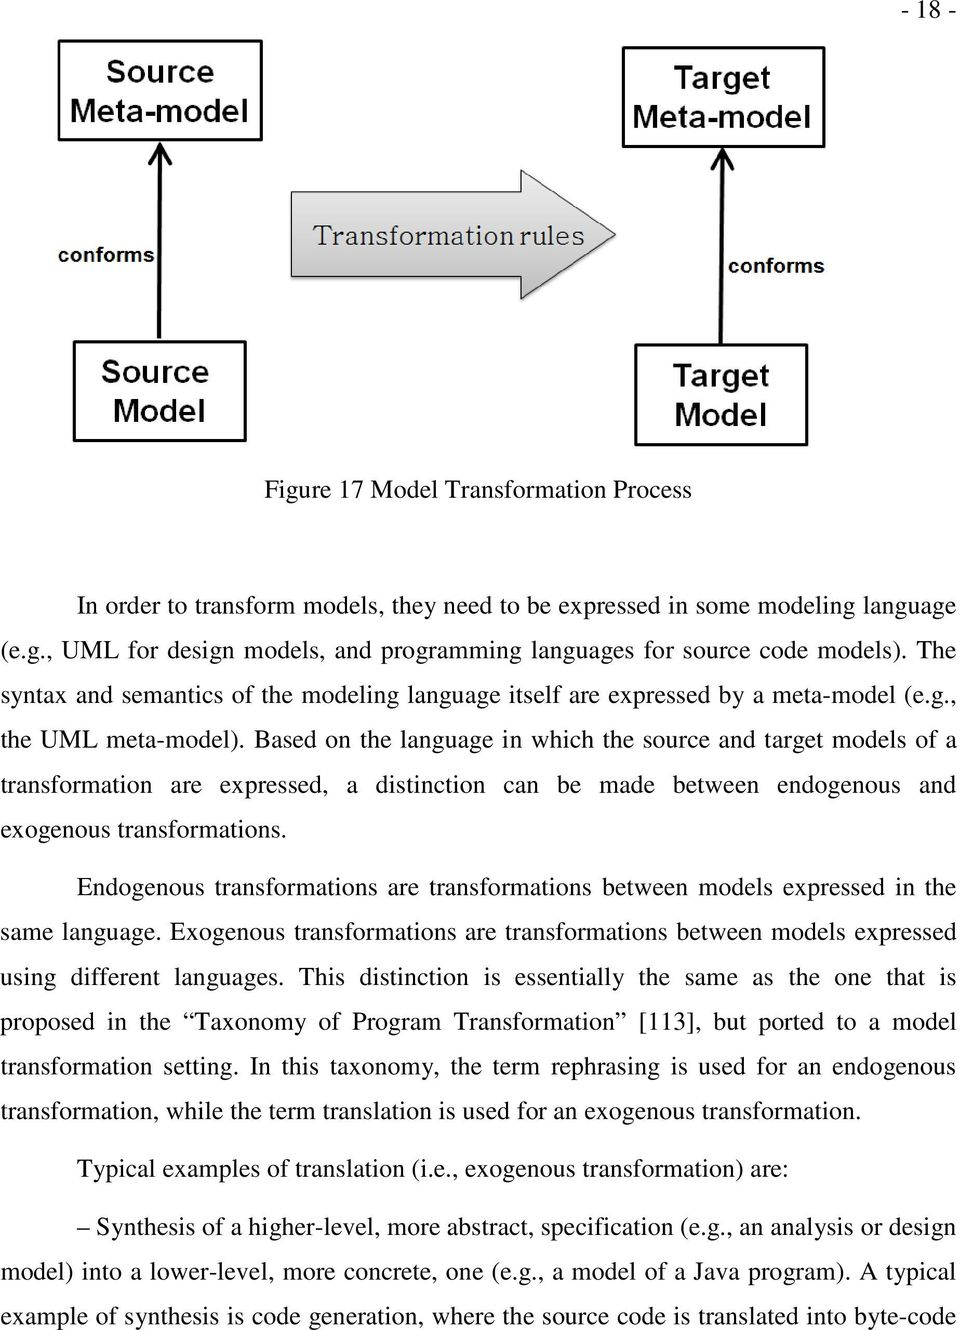 Based on the language in which the source and target models of a transformation are expressed, a distinction can be made between endogenous and exogenous transformations.